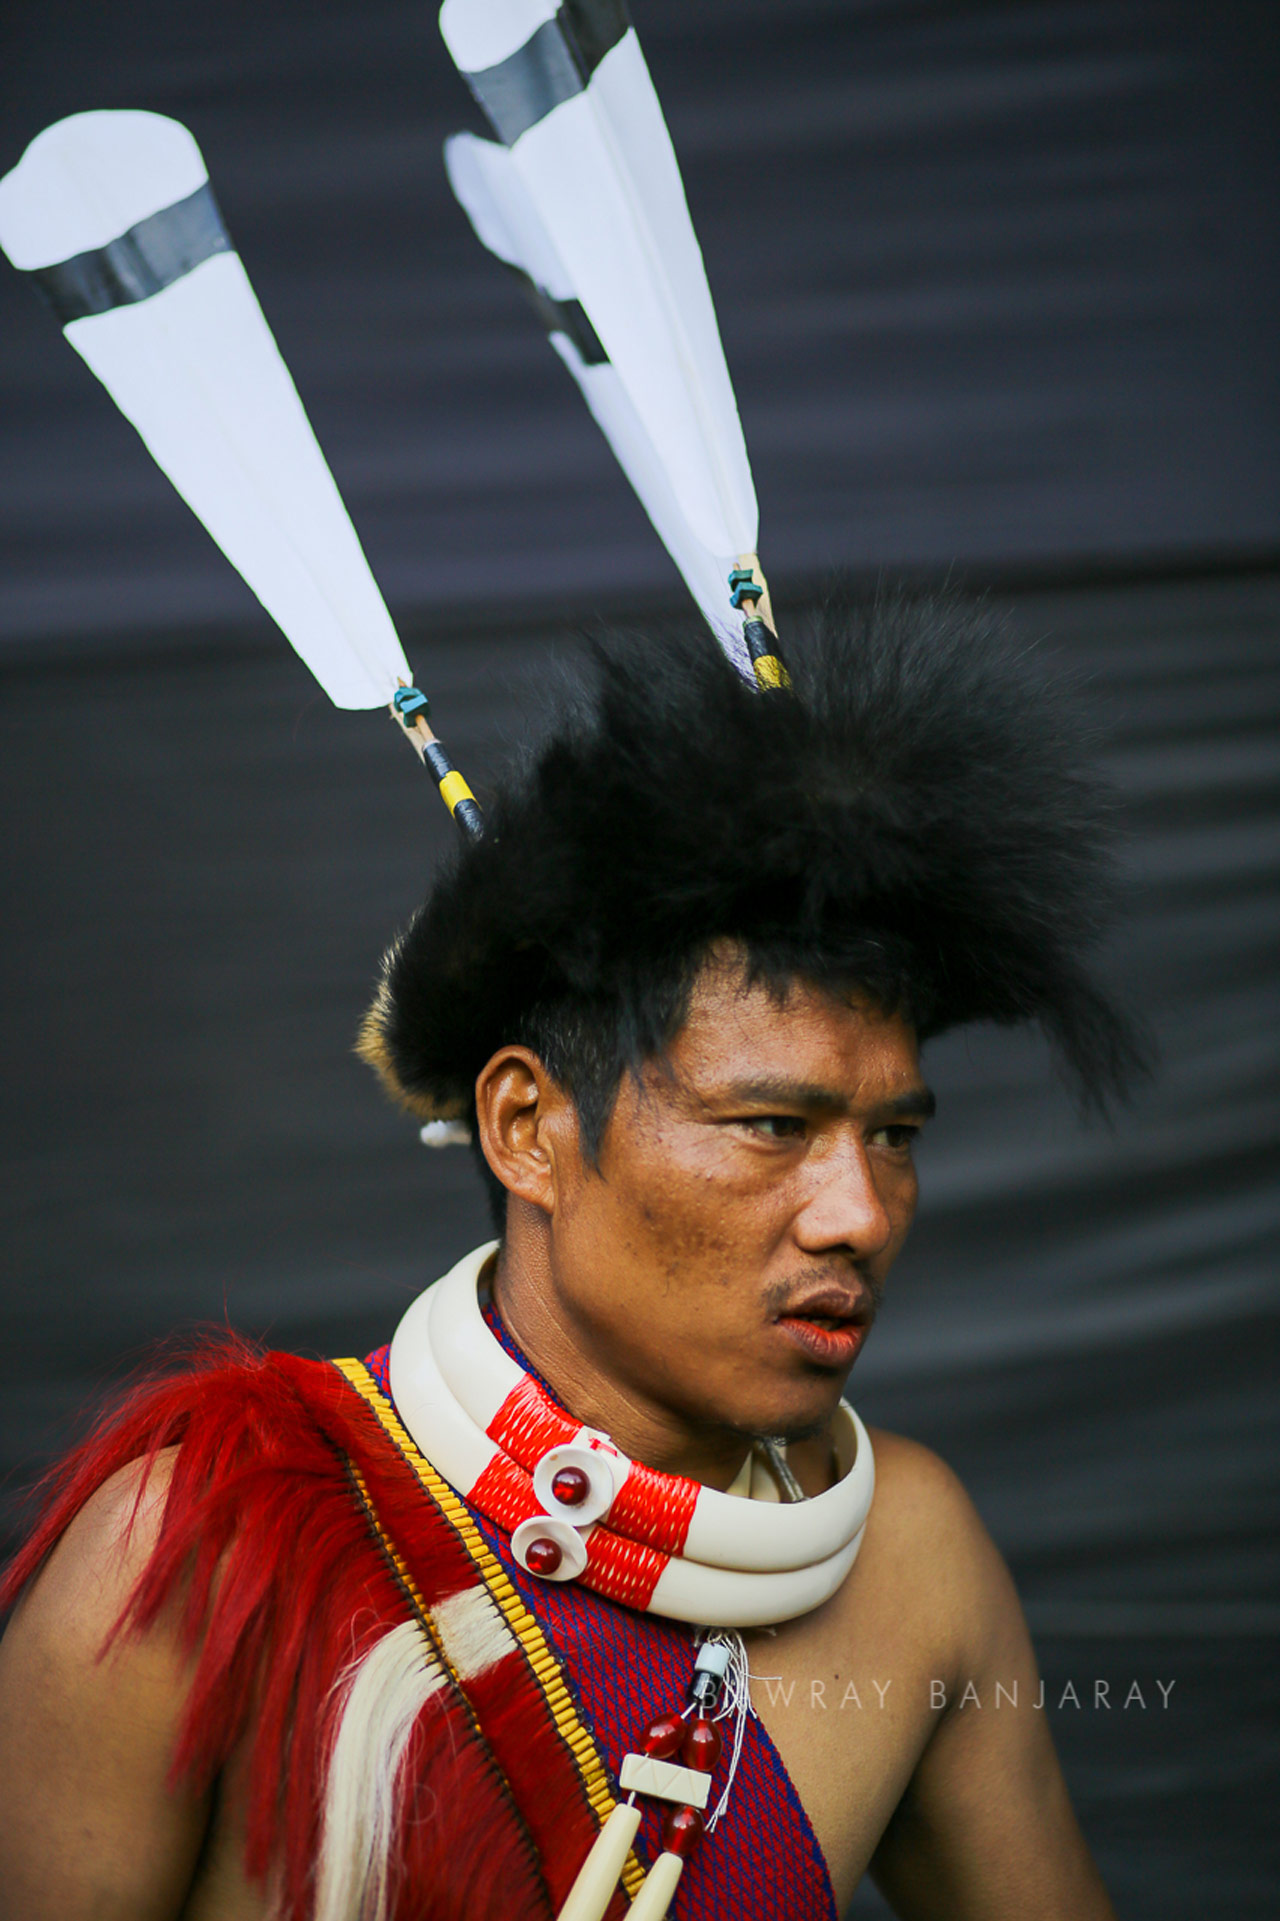 Young boy perparing for his performance at the Hornbill Fest